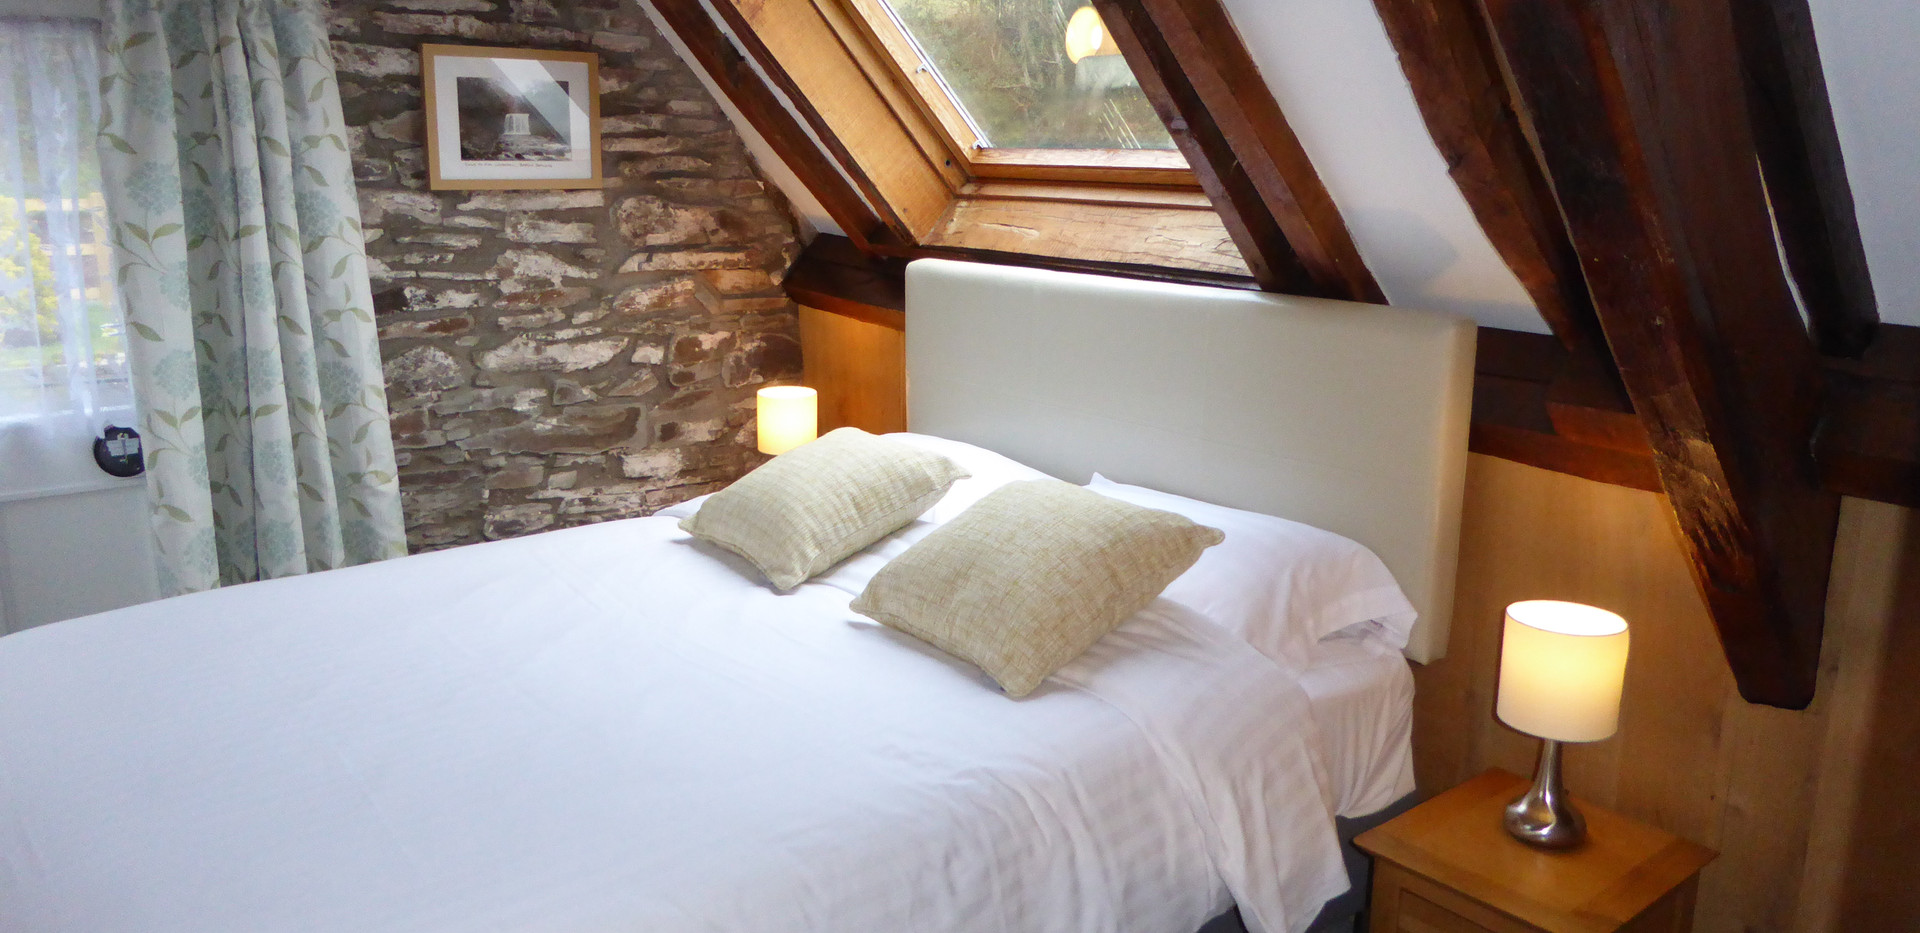 The Granary at Hilltops Brecon Holiday Cottages